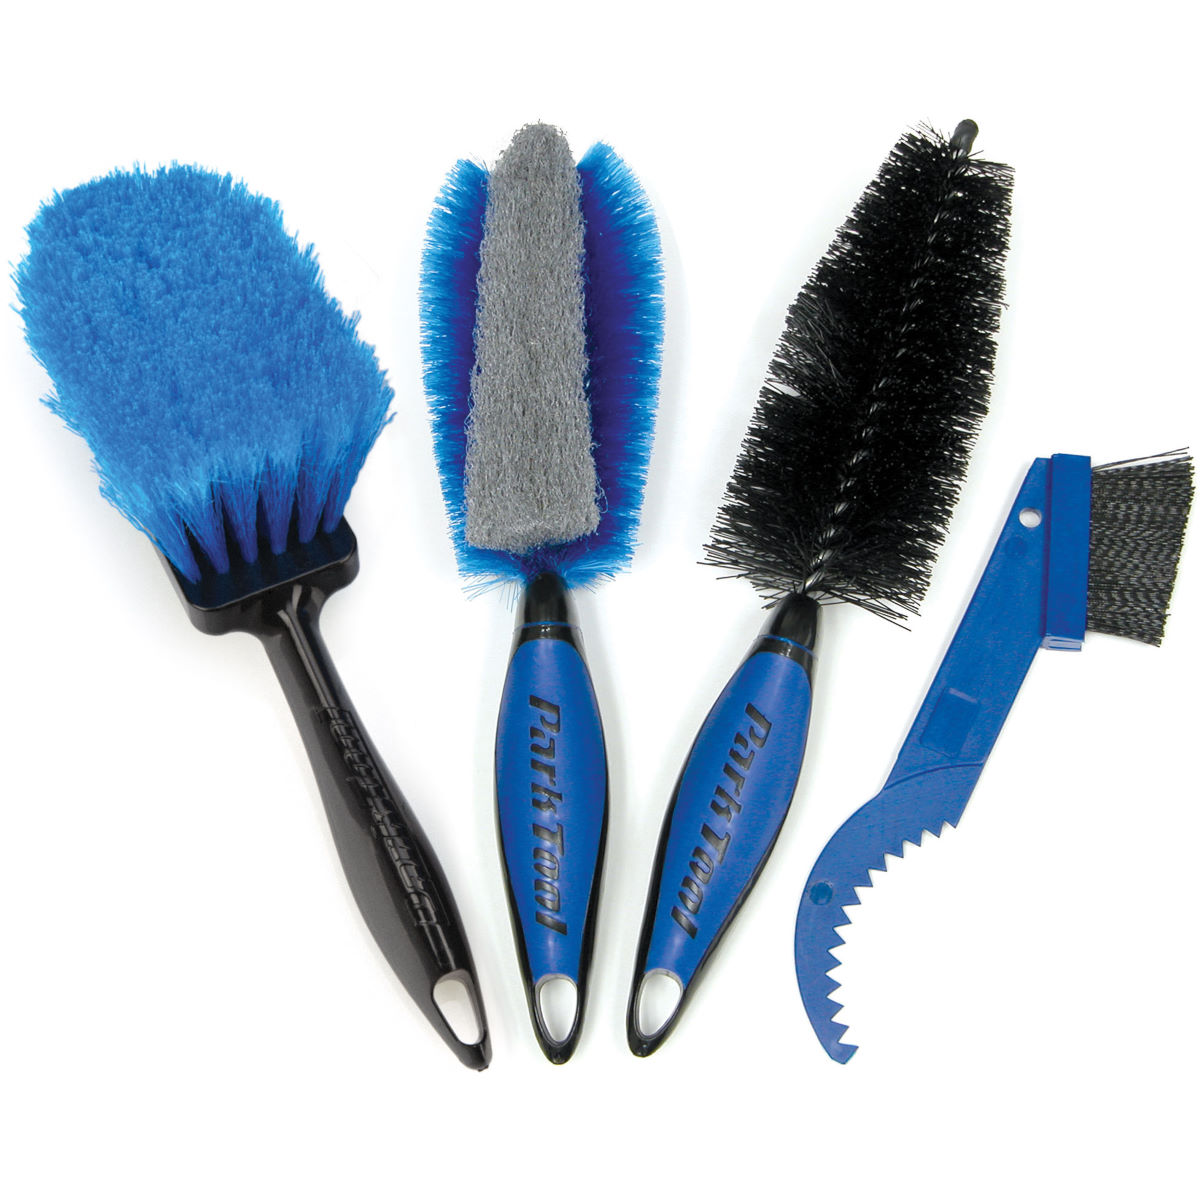 Park Tool Park Tool Bike Cleaning Brush Set BCB4.2   Cleaning Equipment